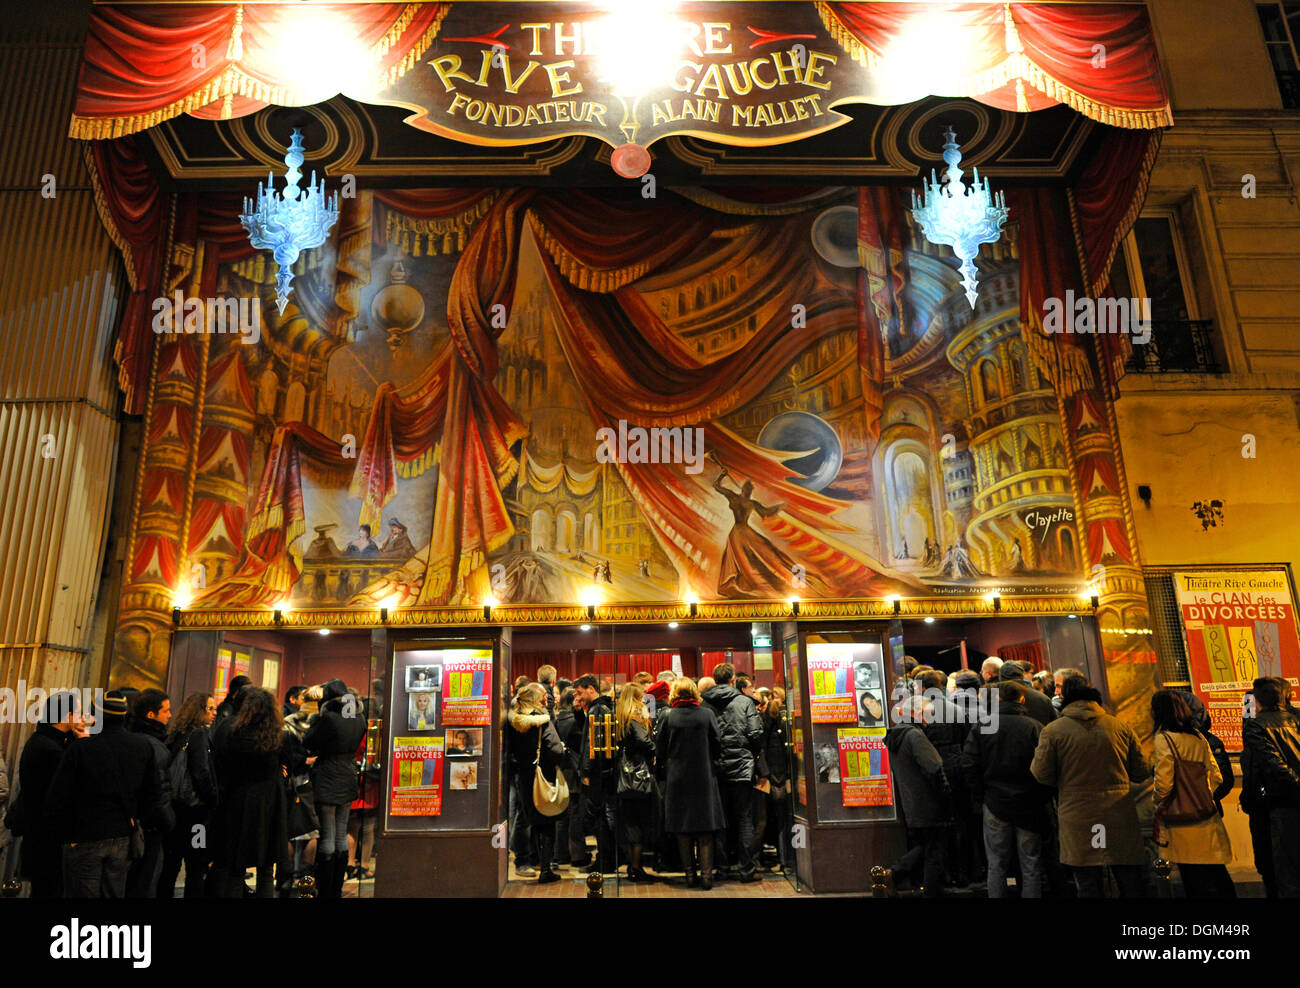 Night shot, people in front of the box office, theater, Theatre Rive Gauche theater, Gaité theater district, Paris, France - Stock Image